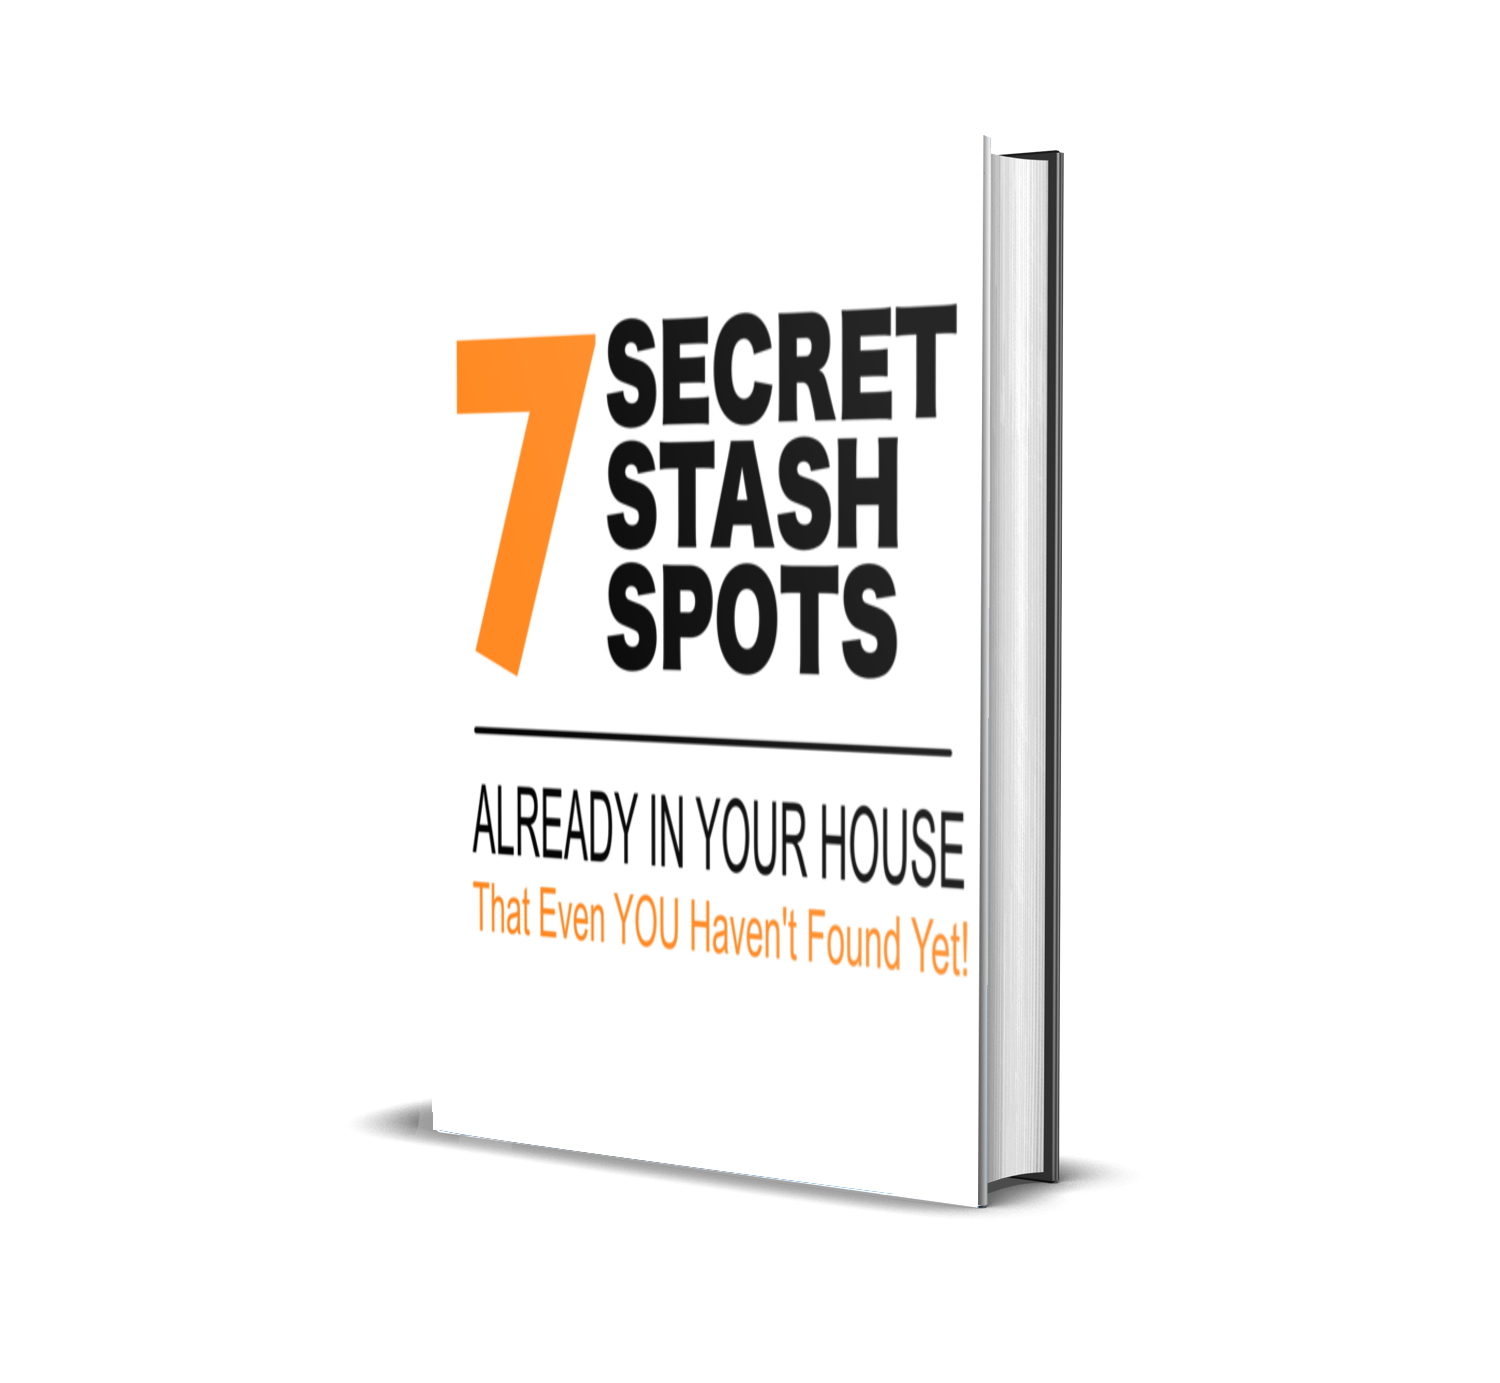 7 Secret Stash Spots